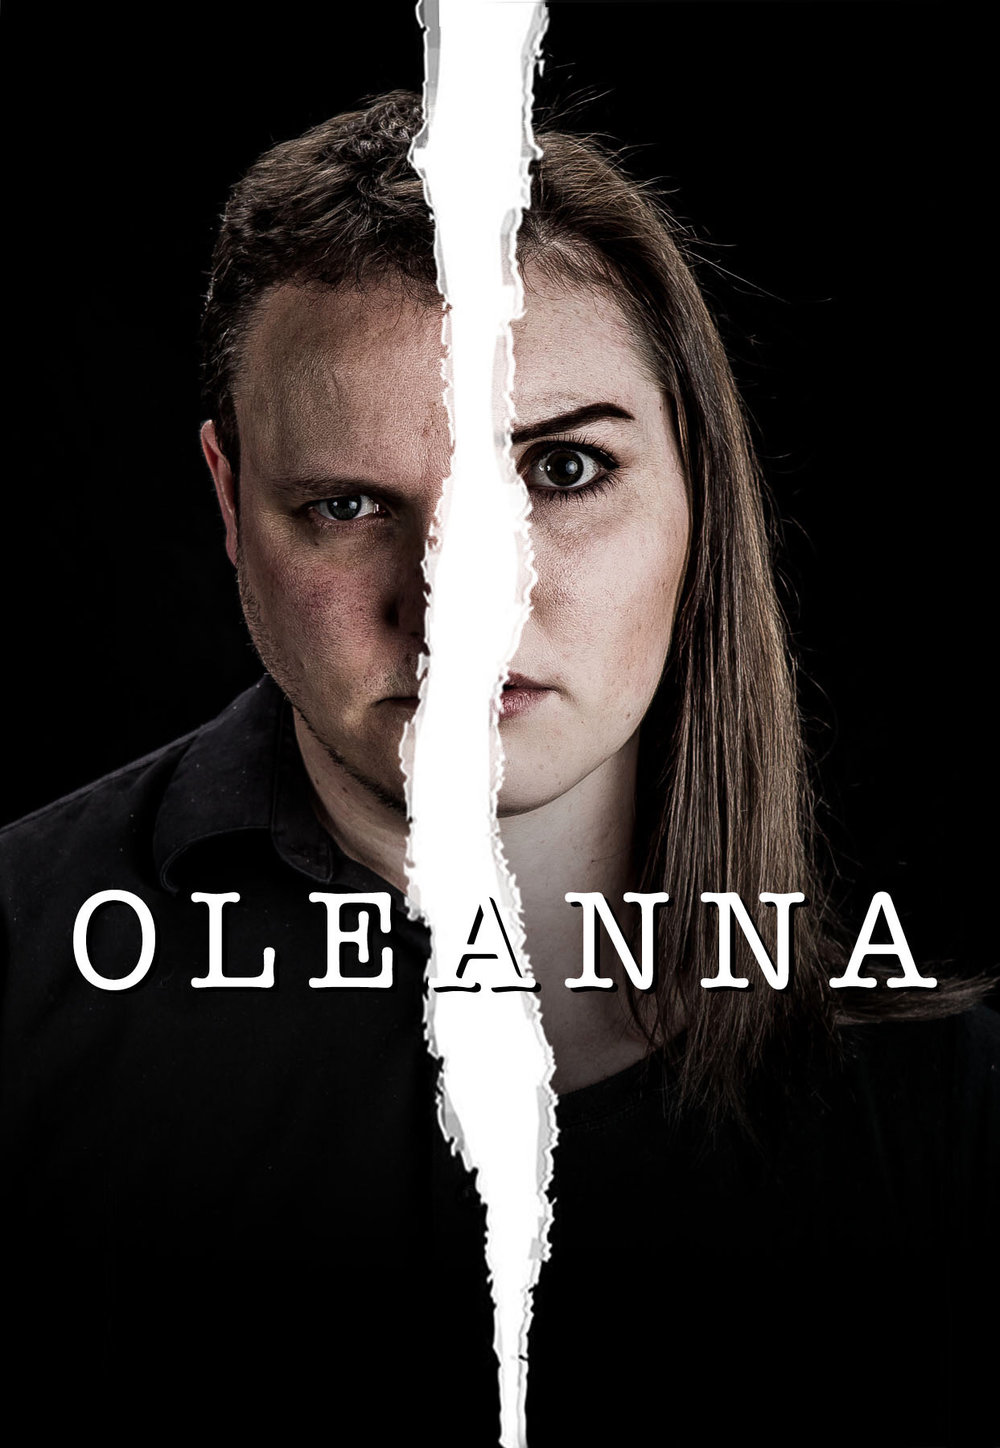 Oleanna Main Page Poster Image.jpg